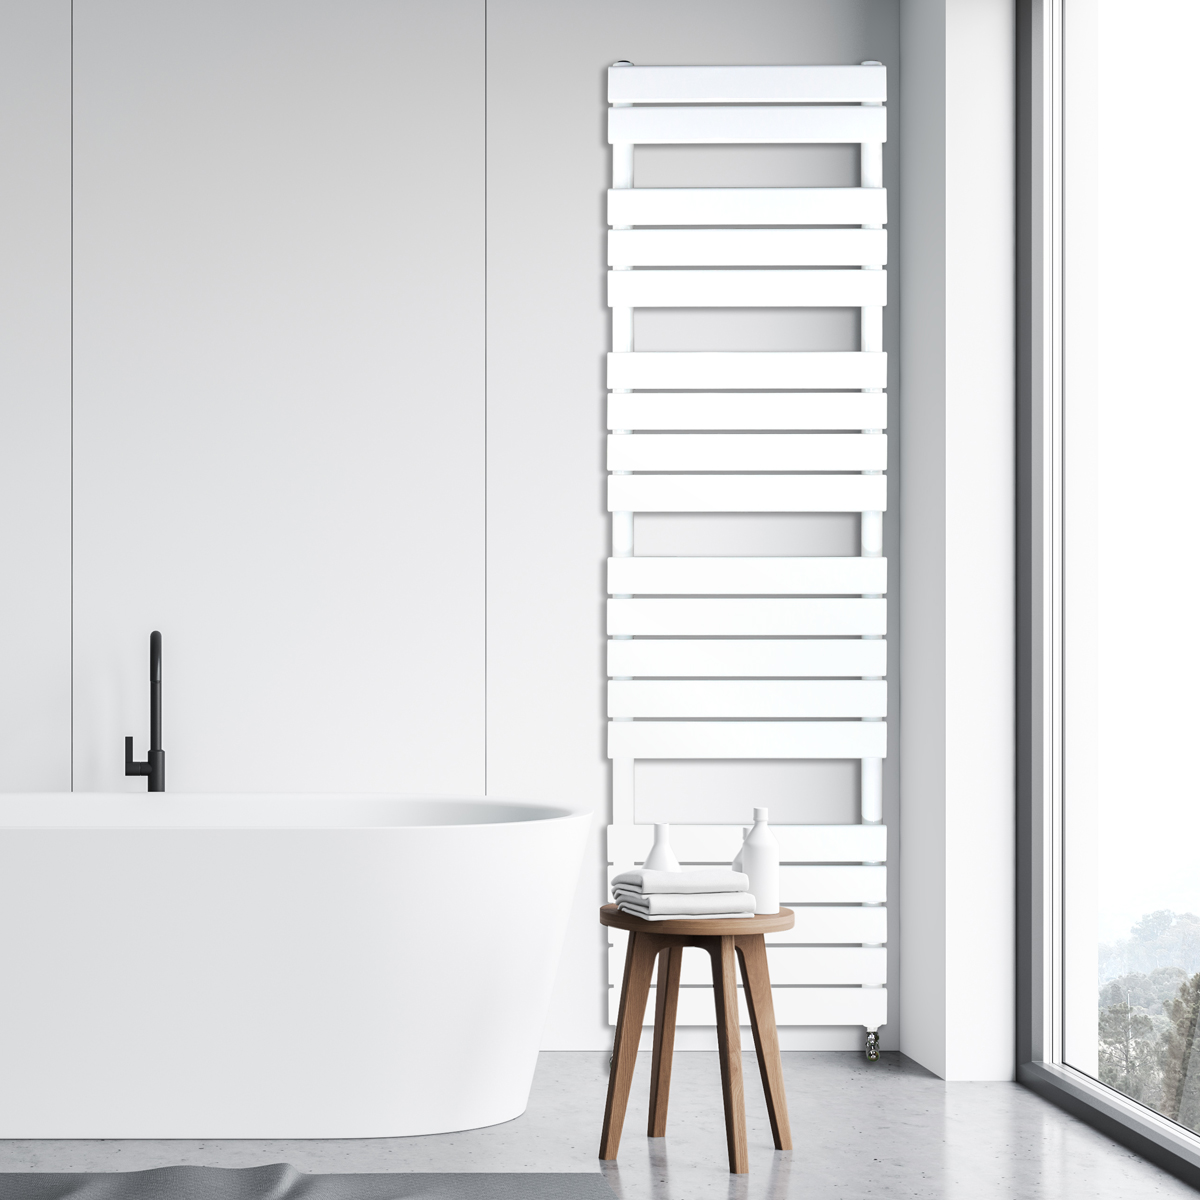 Adige Designer Towel Radiator White Large, Designer Radiators Dublin